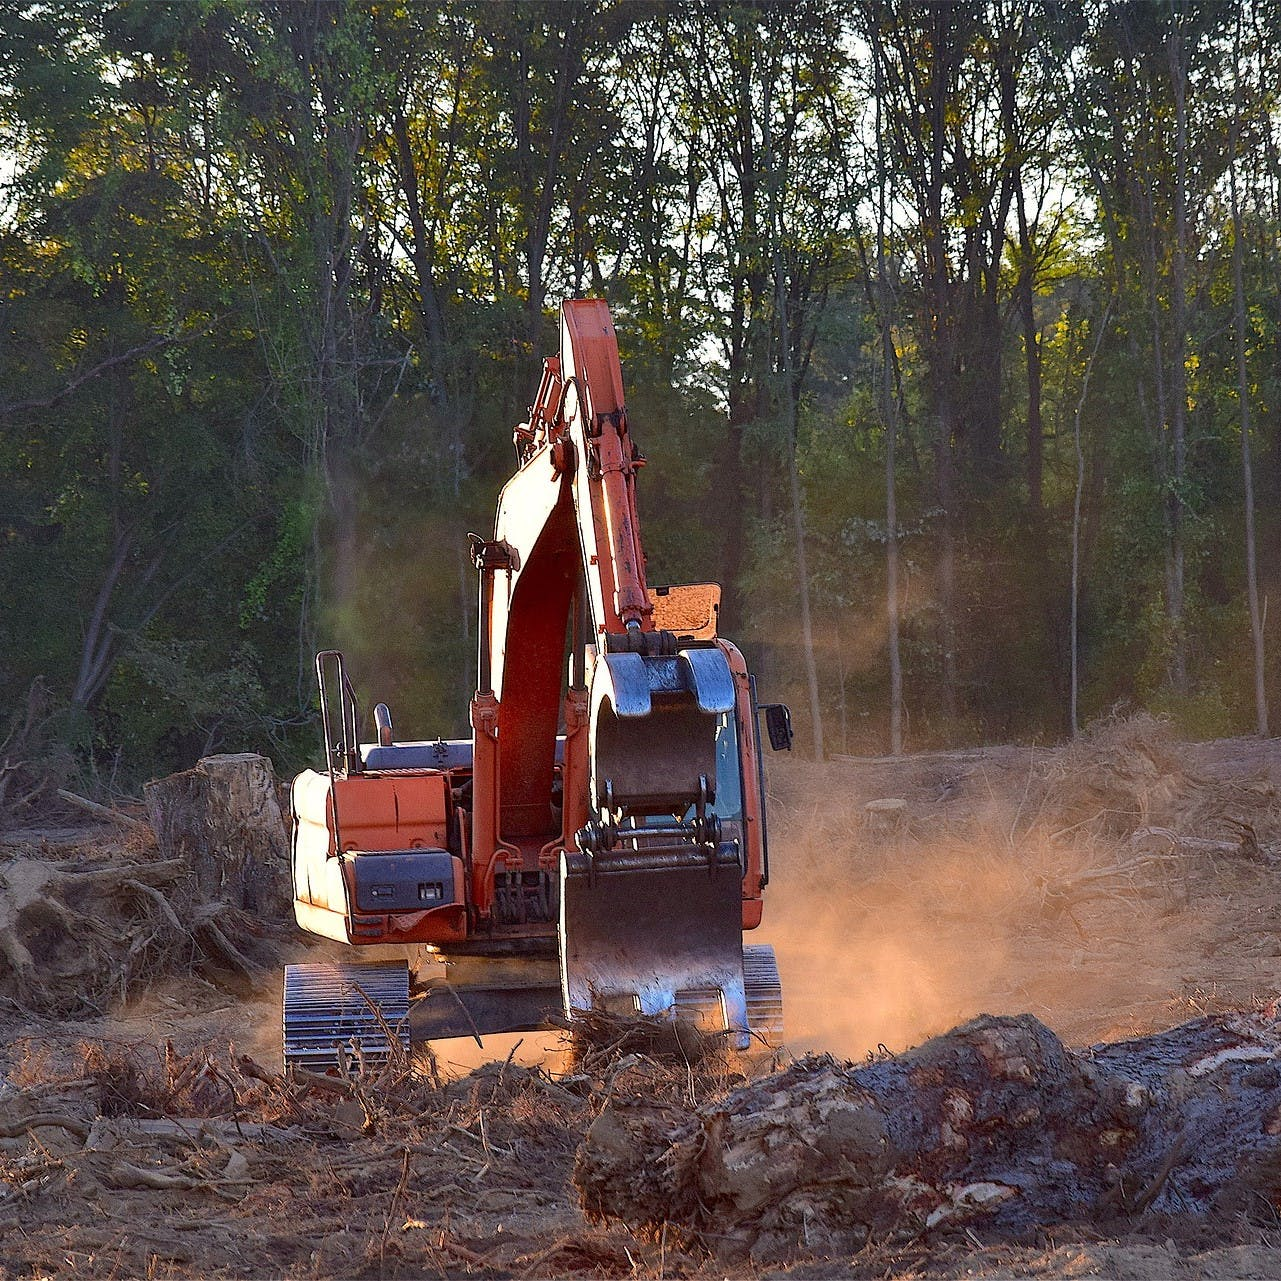 Heavy machinery is used to clear forest. Deforestation is the leading driver for our planet's loss of biodiversity.